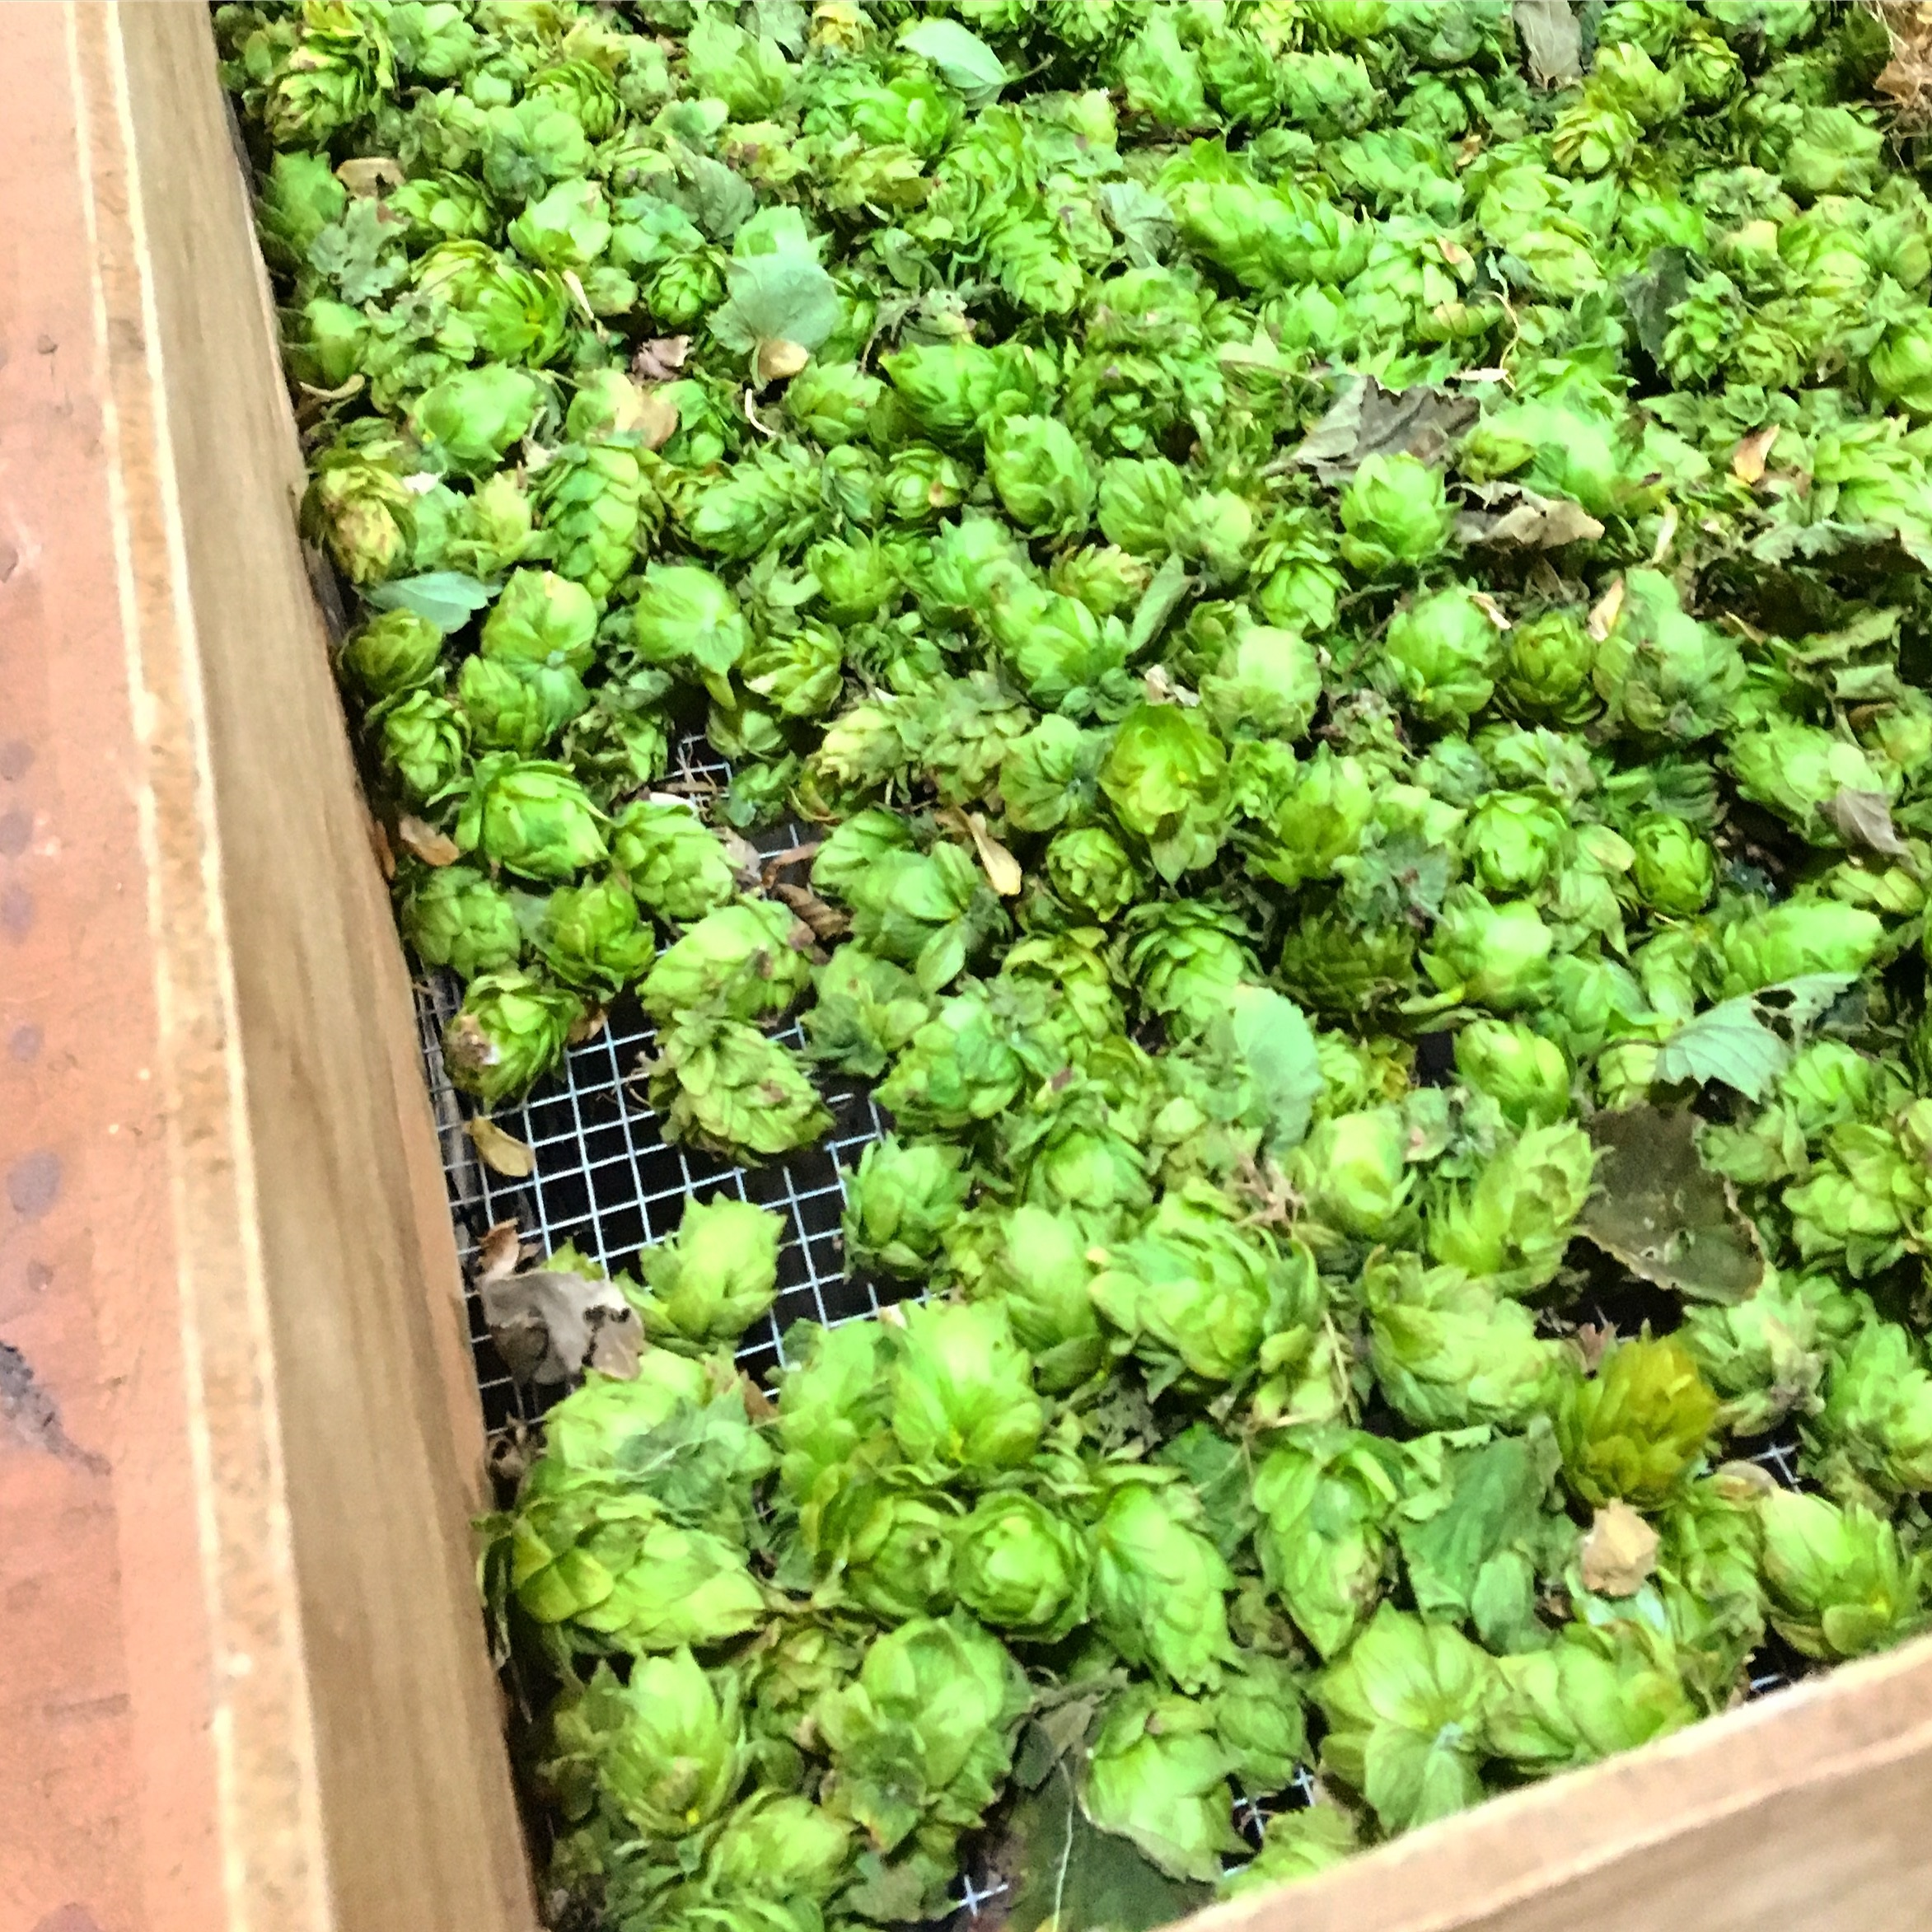 Box of Cascade hops at Vanish brewery in Virginia.